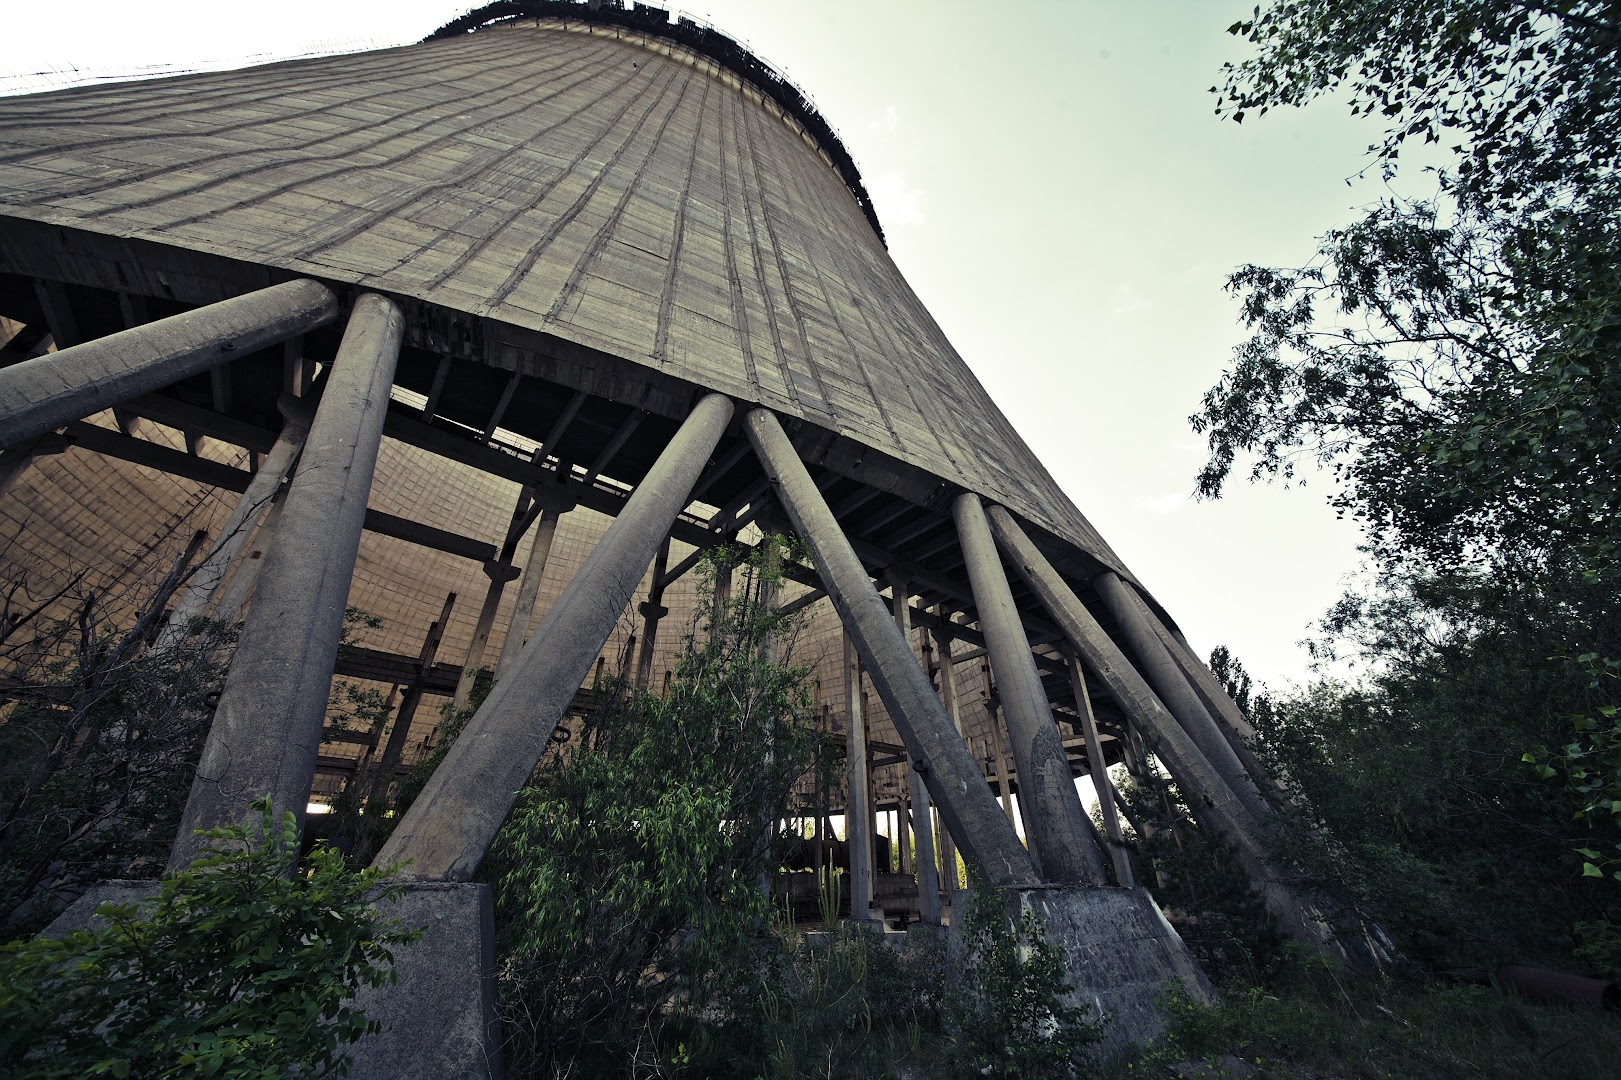 Unfinished cooling tower